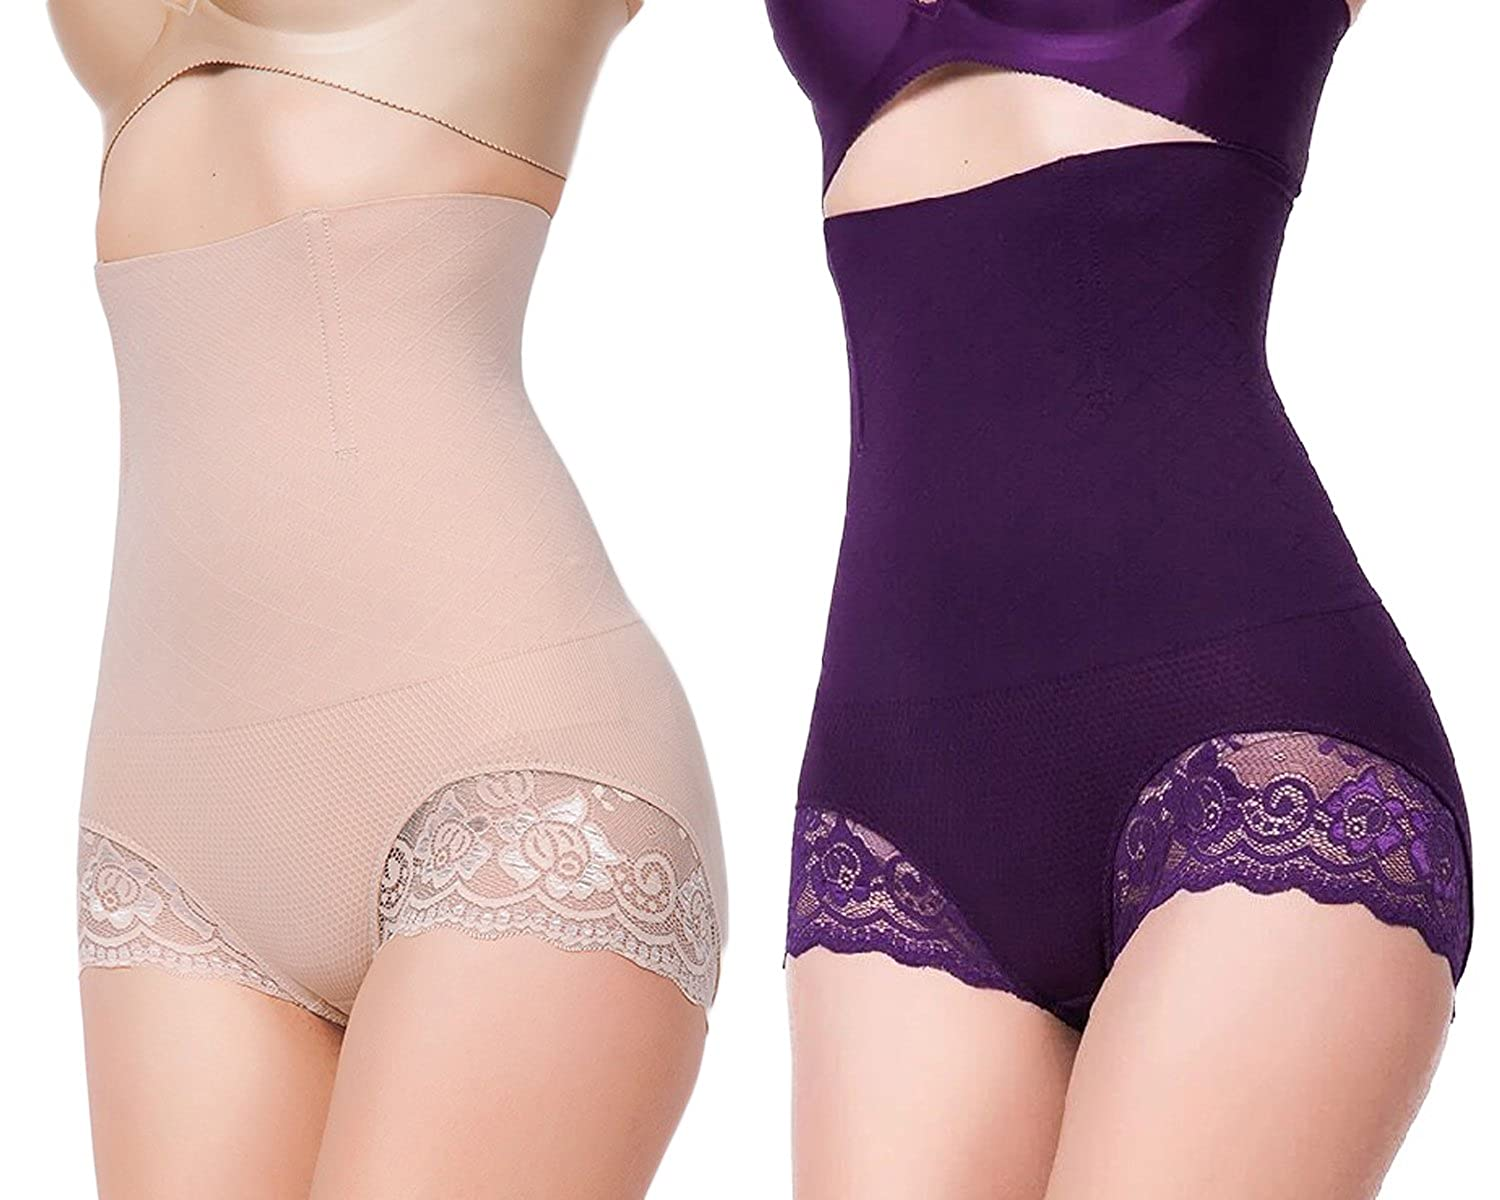 Beige+purple YaShaer 2 Pack Invisible Strapless Body Shaper Shapewear High Waist Tummy Control Butt Lifter Panty Slim